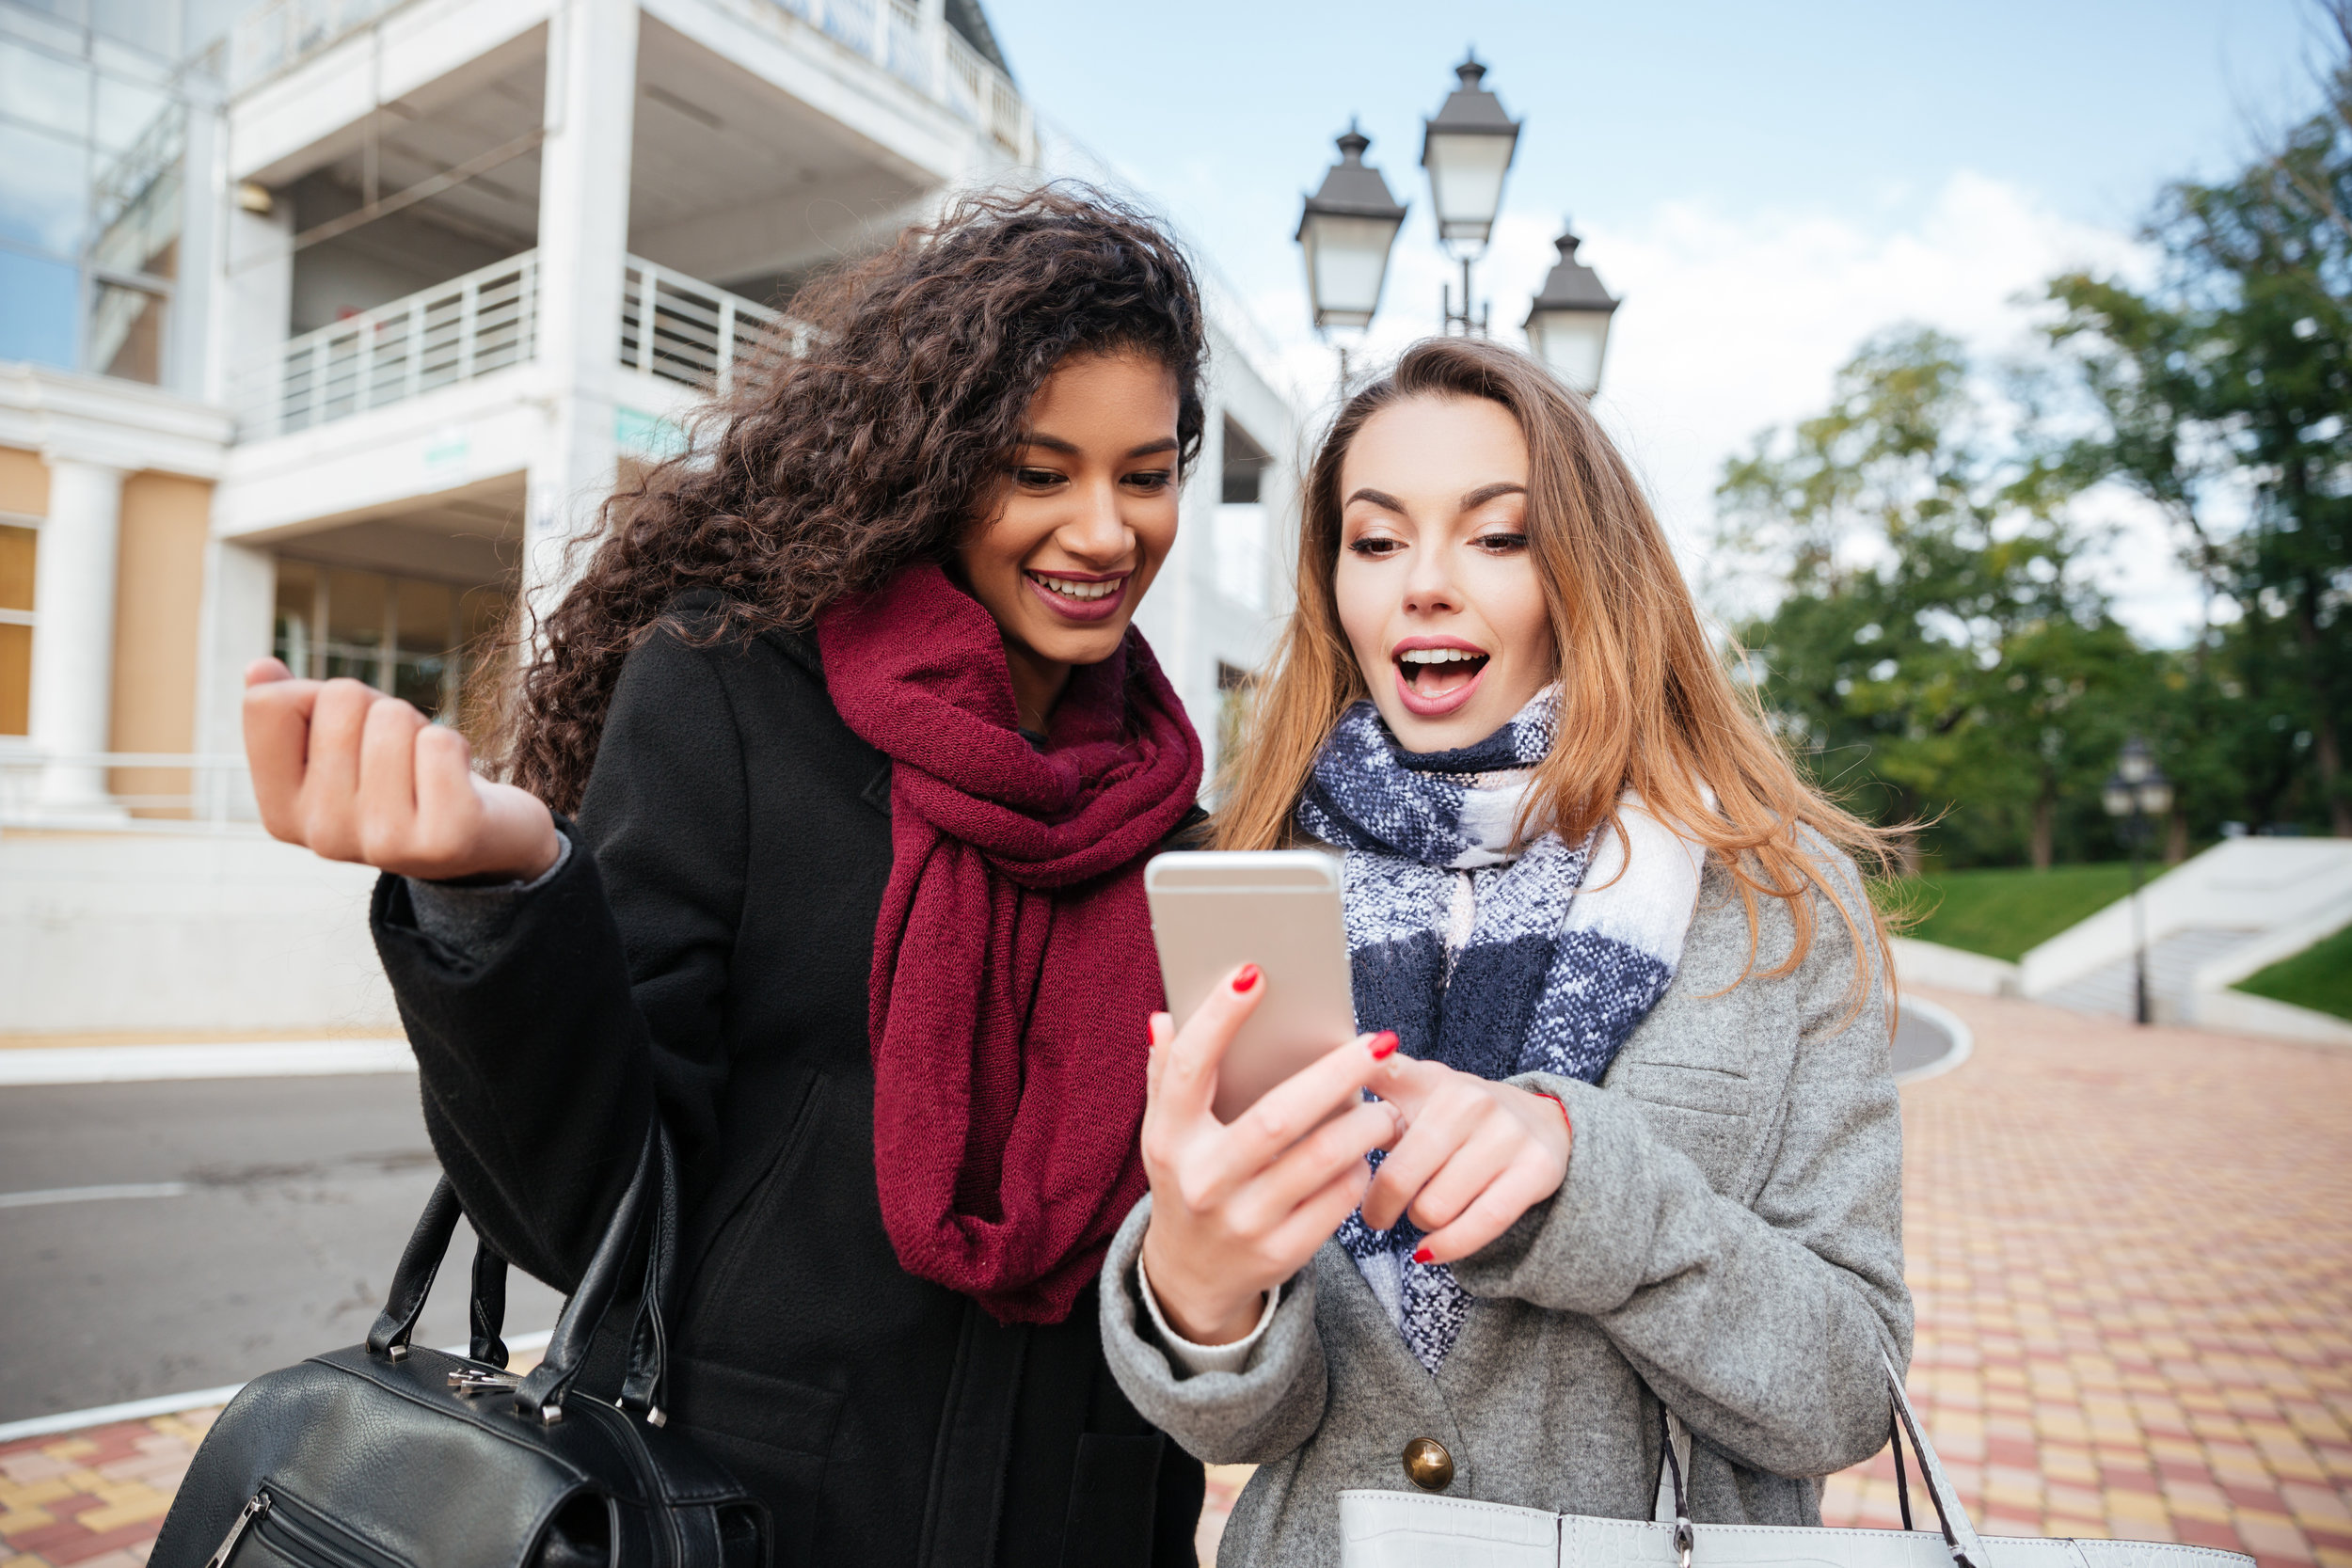 graphicstock-euphoric-friends-watching-videos-on-a-smartphone-and-pointing-at-screen-surprised-caucasian-girl-wearing-scarf-in-a-cage-print-african-lady-wearing-burgundy-scarf_rOfaSaKUhg.jpg